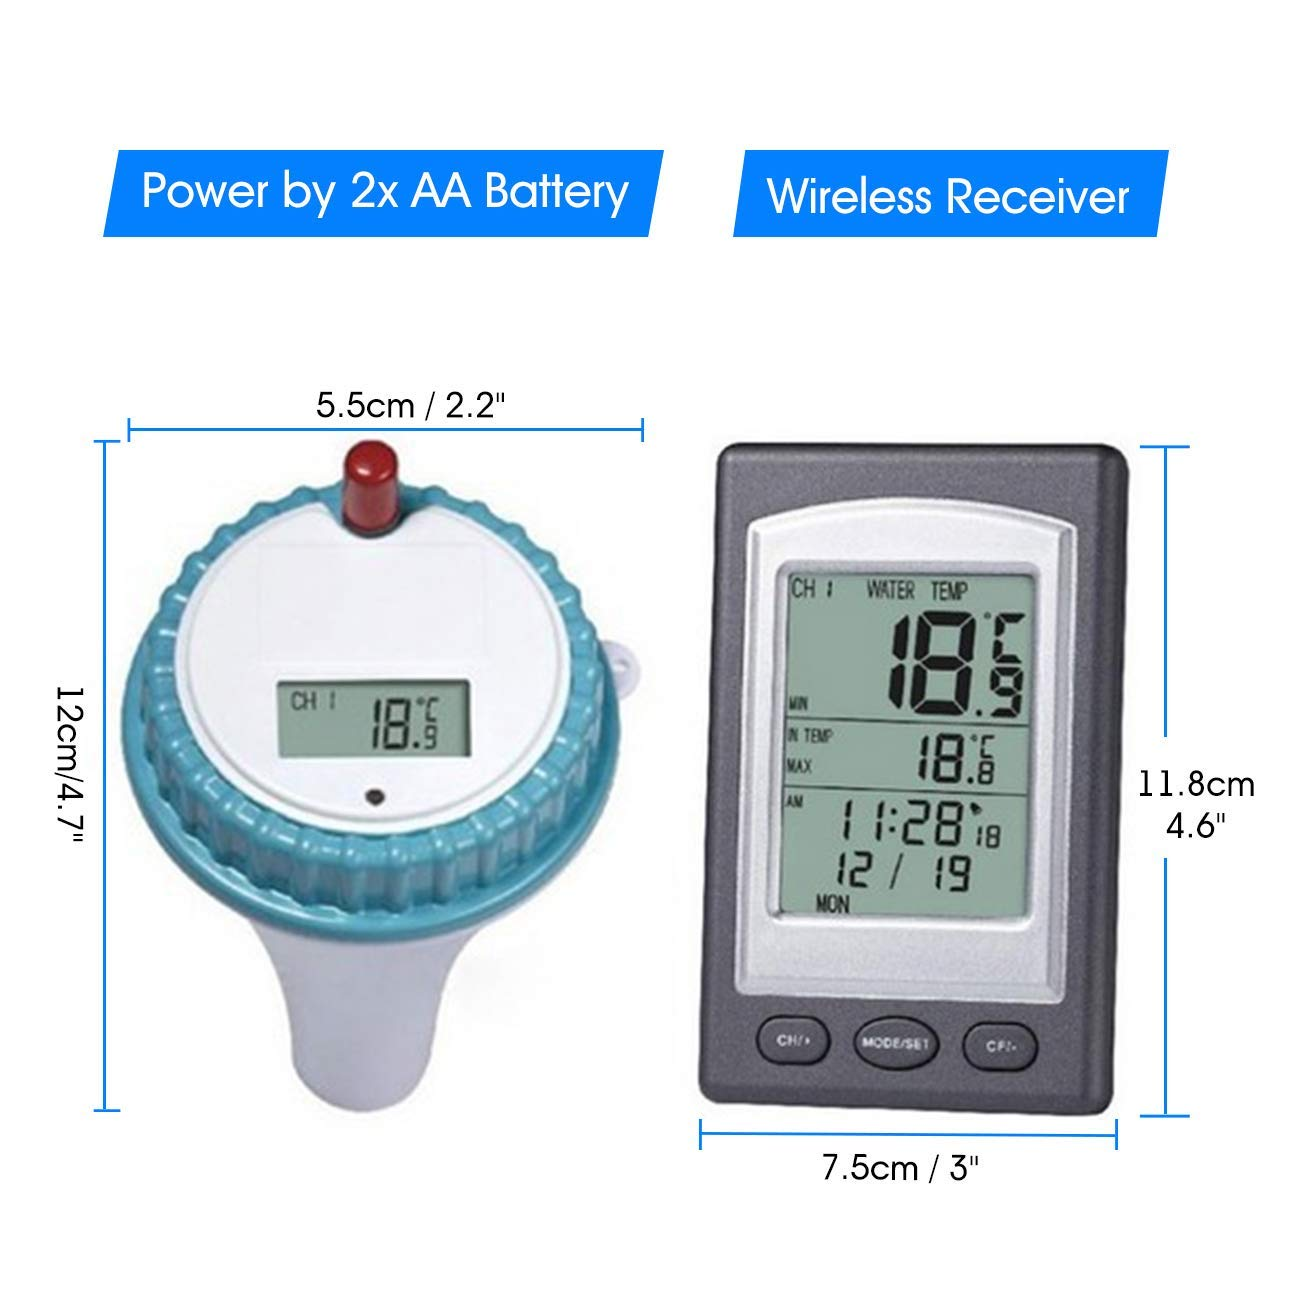 ZUZU Solar Powered Digital Pool and Spa Thermometer Wireless Thermometer Pool Pool Solar Thermometer Swimming Pool Water Temperature Monitor,A